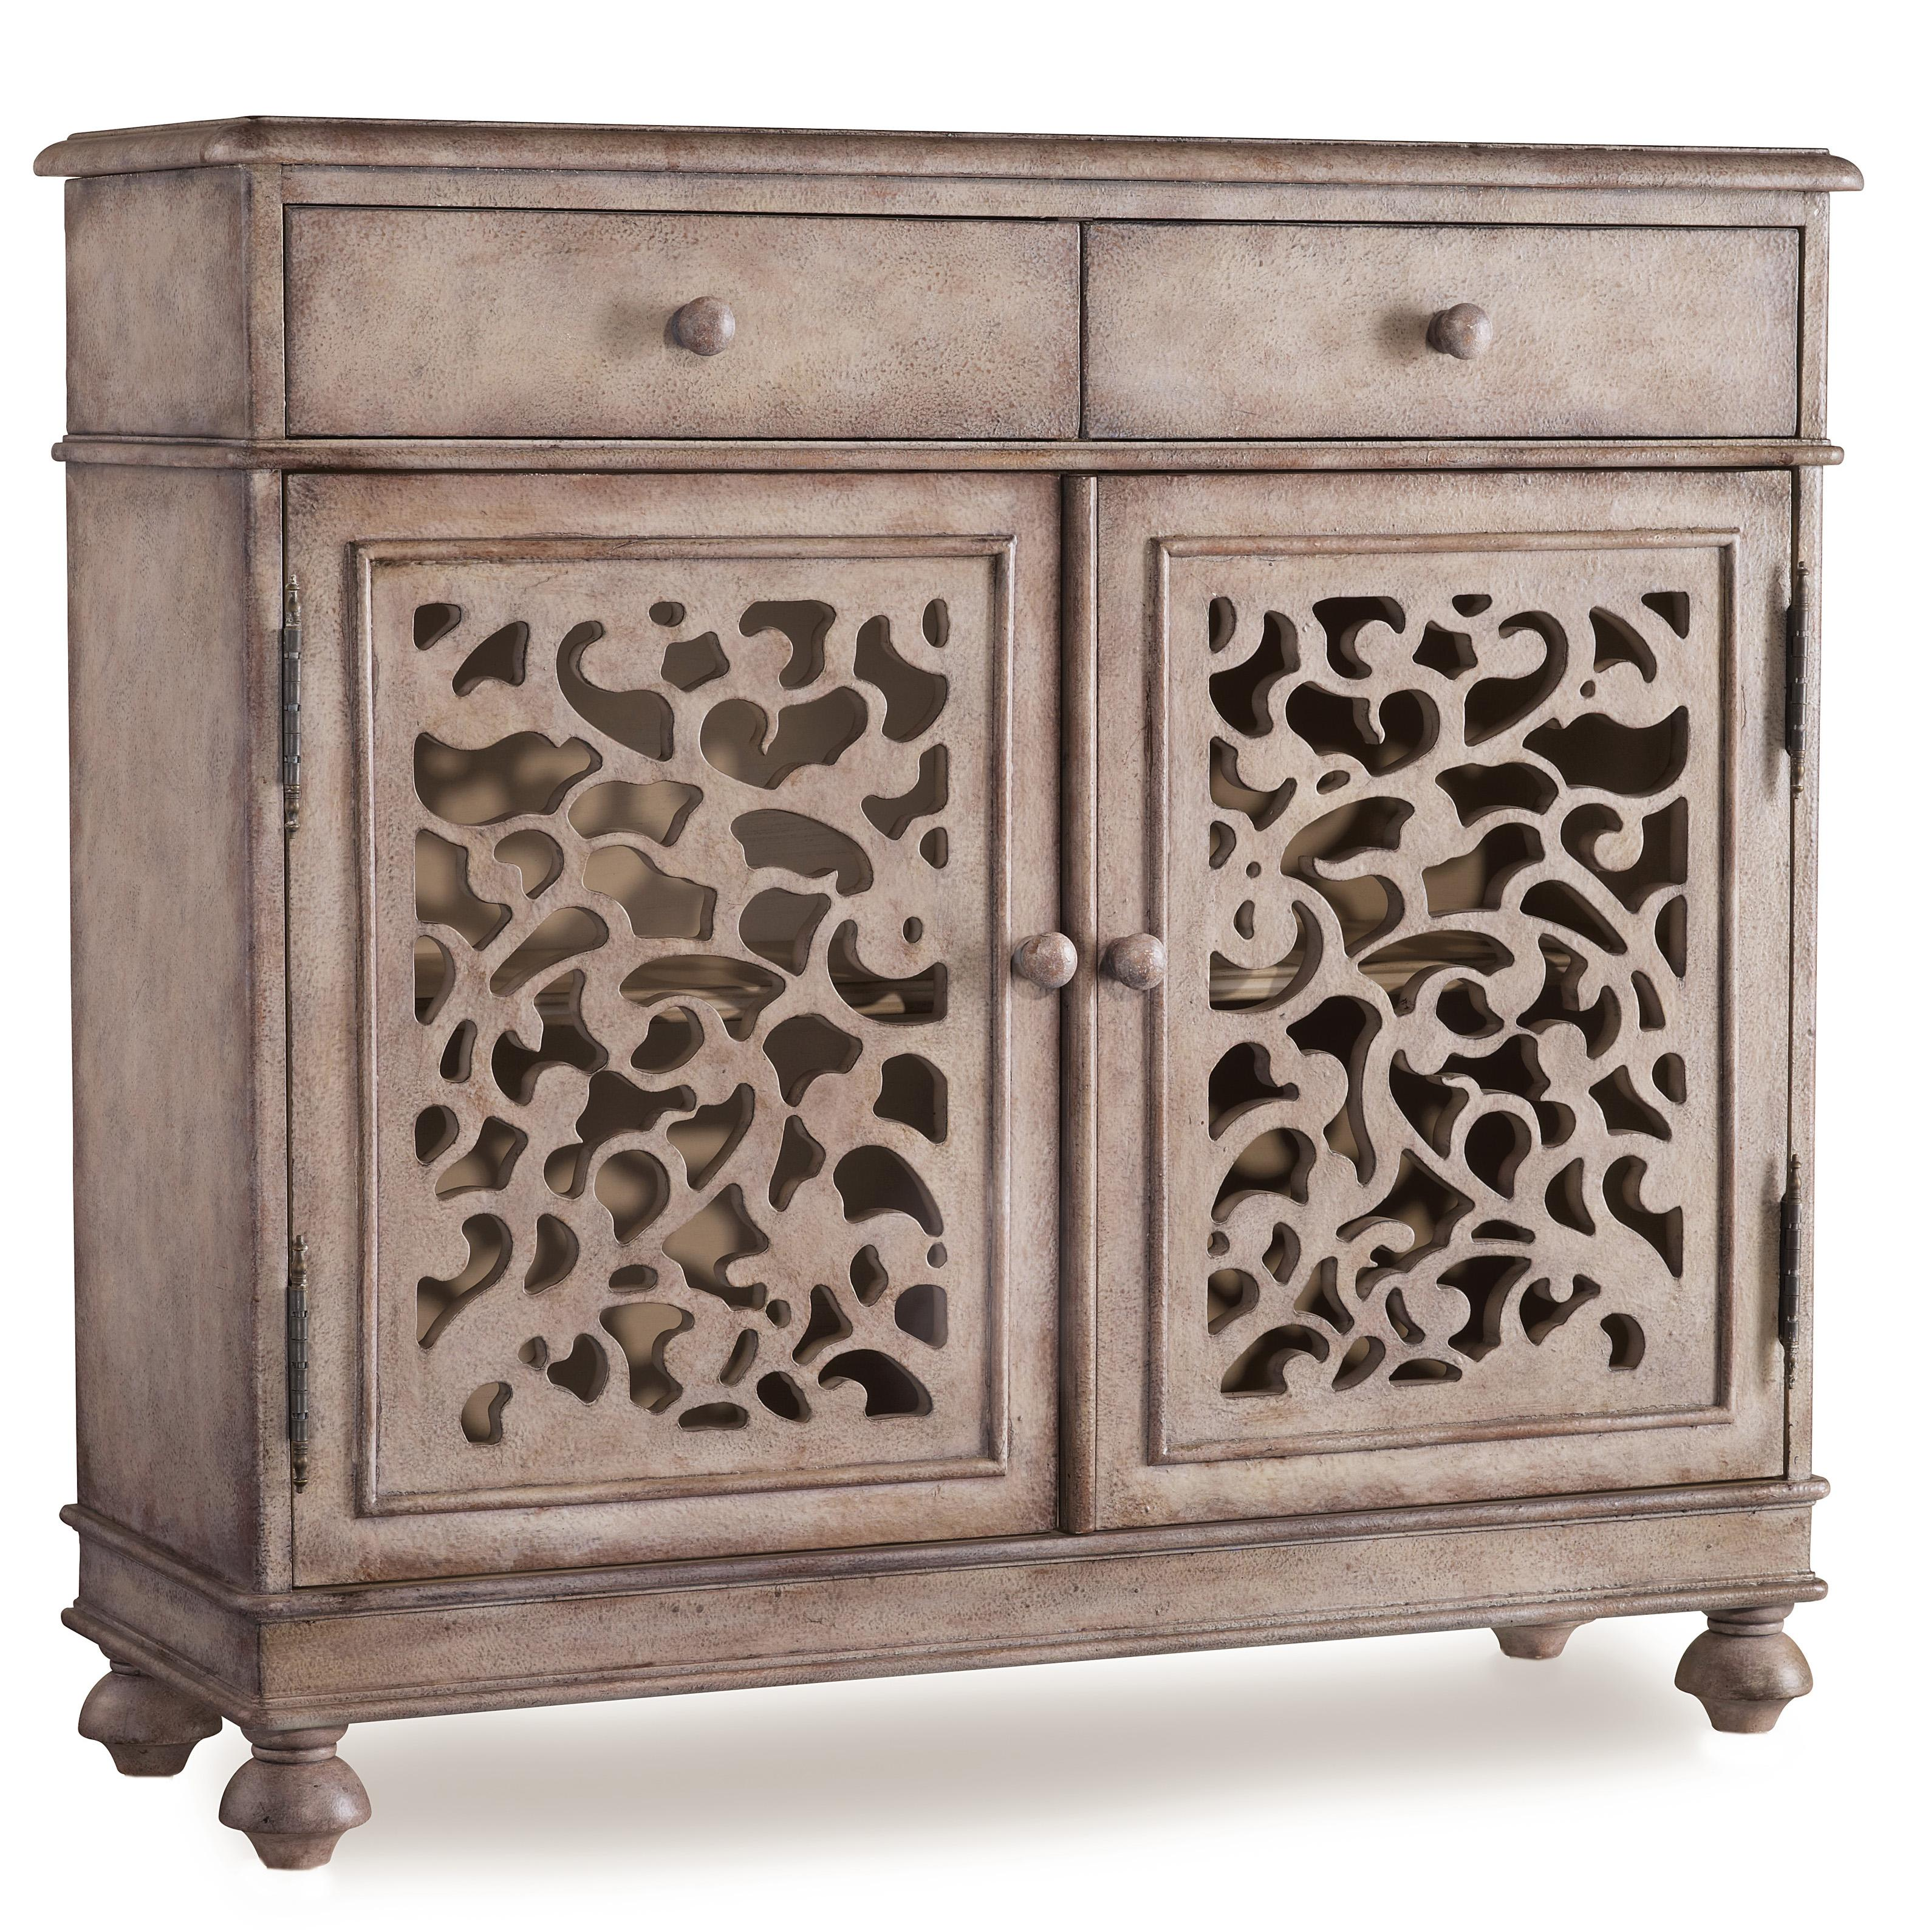 Hooker Furniture Mélange Filigree Hall Chest - Item Number: 638-85004